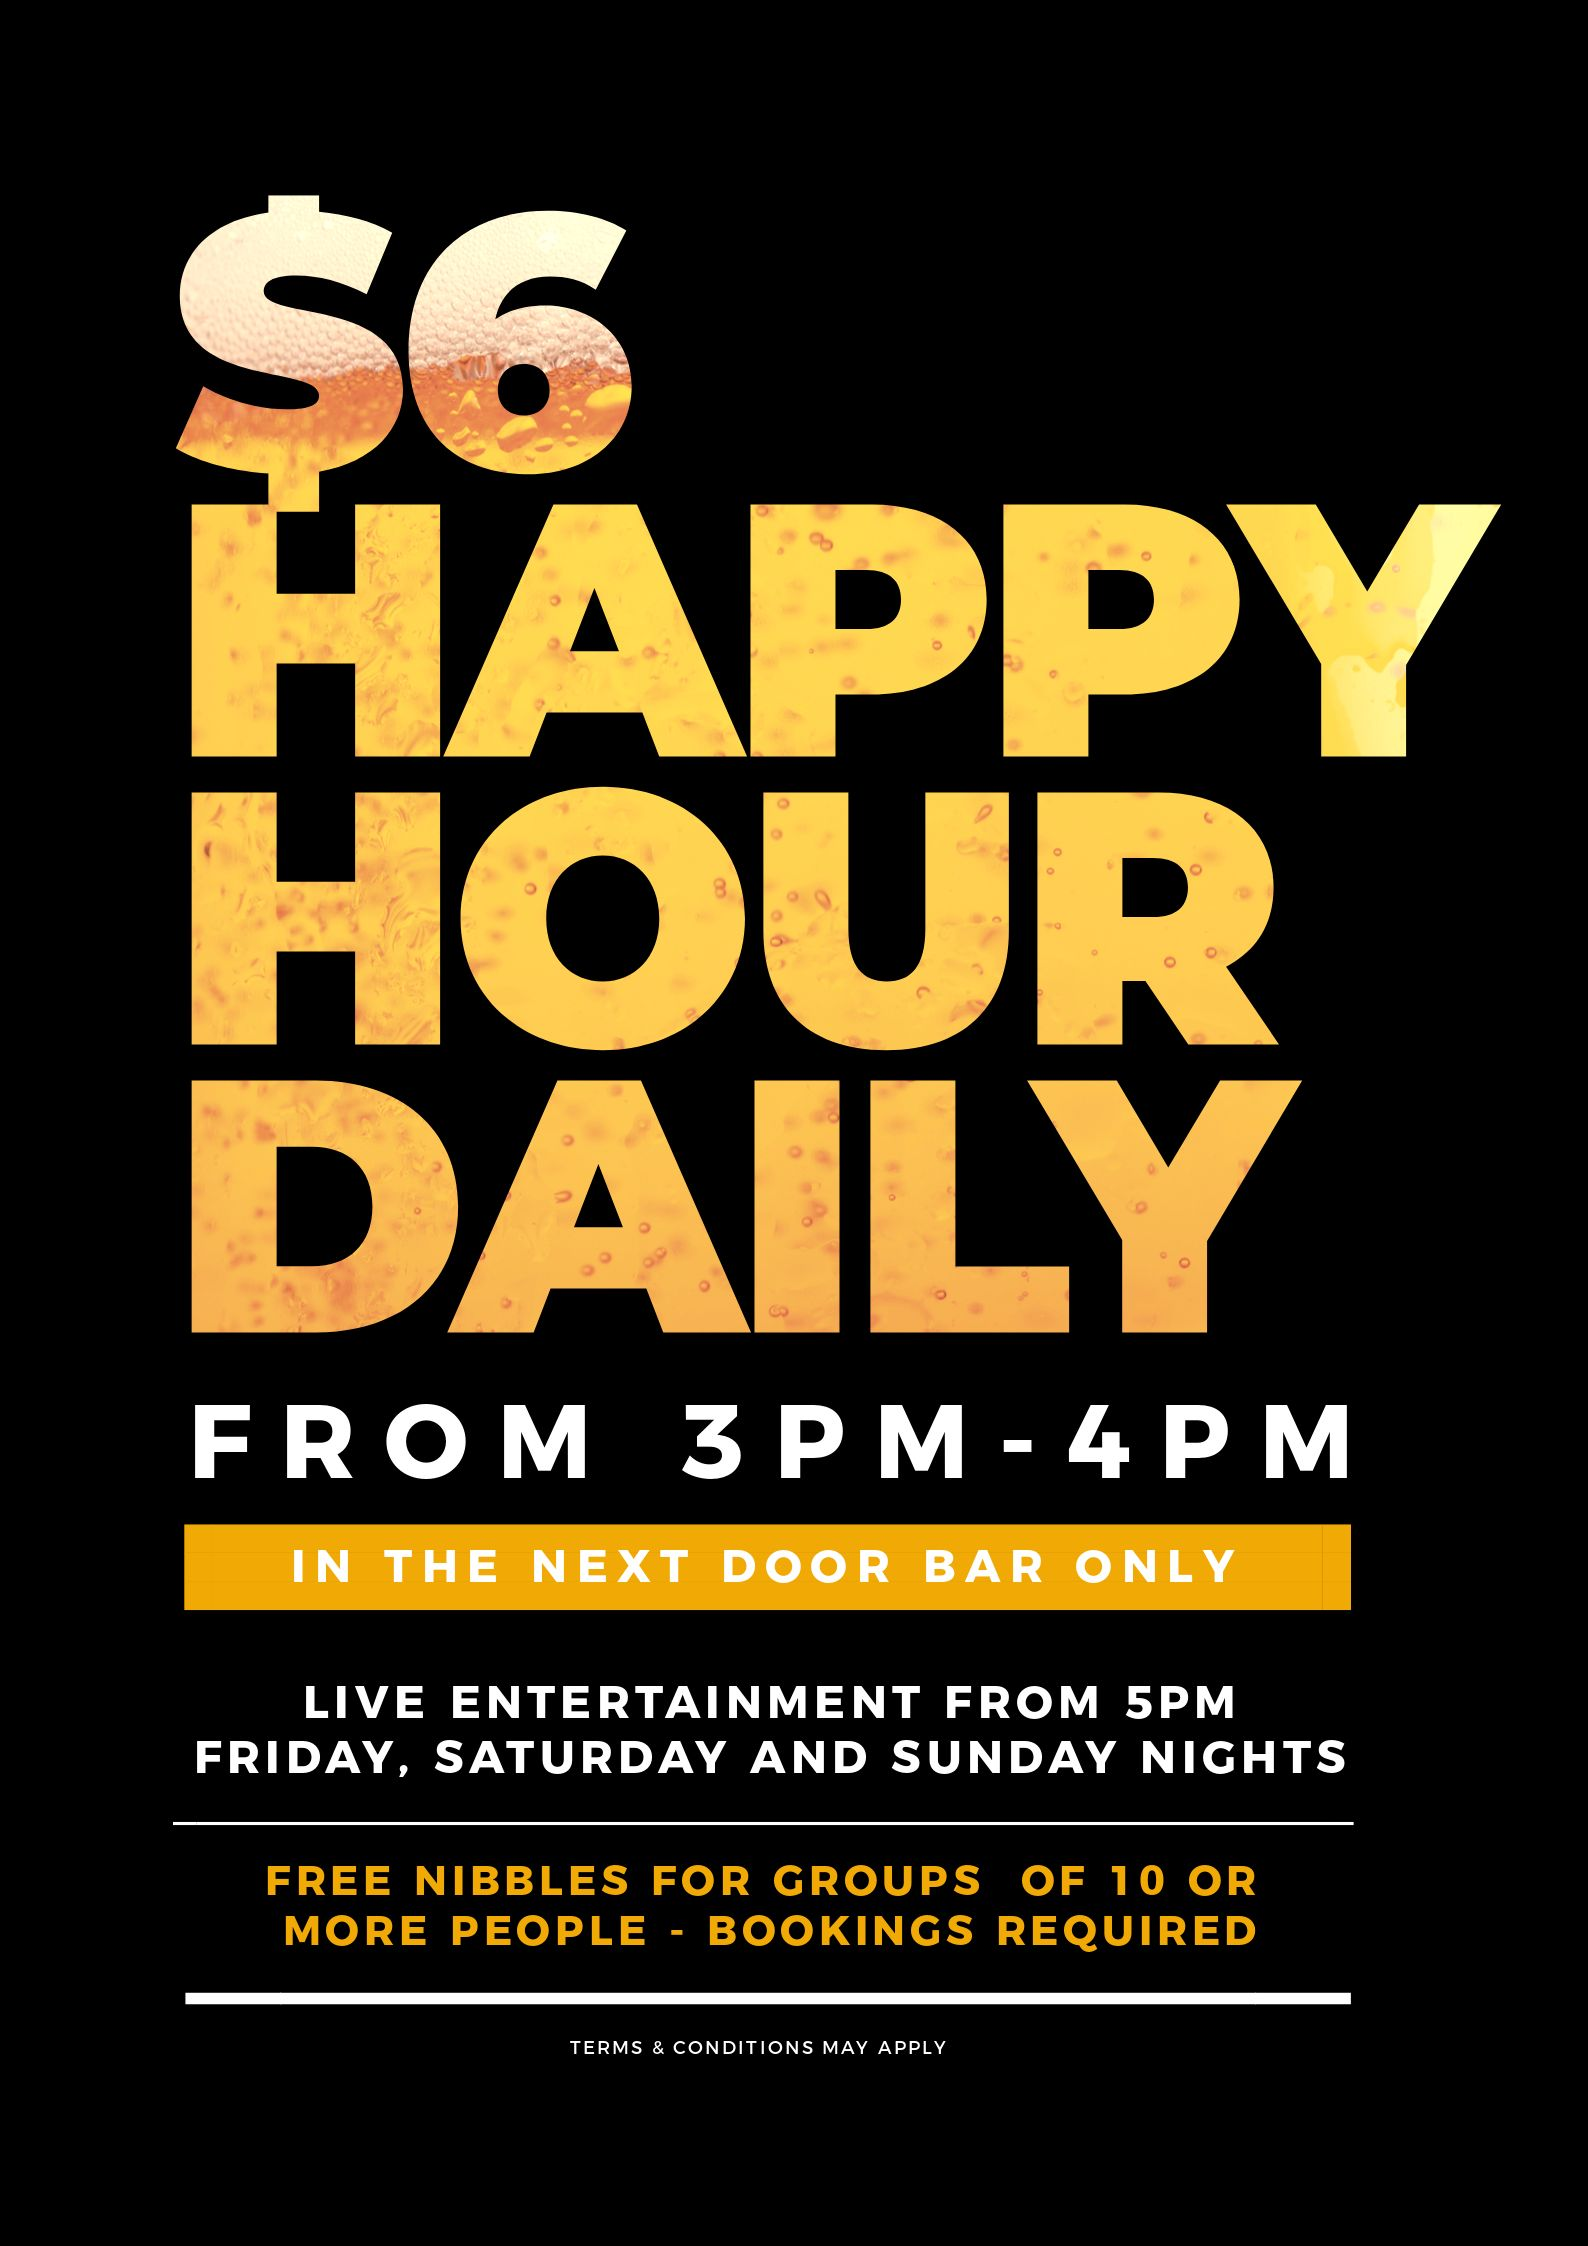 Happy Hour Poster - Image in Text Poster Designs 10 Ways - Hack Your Visual Design Series